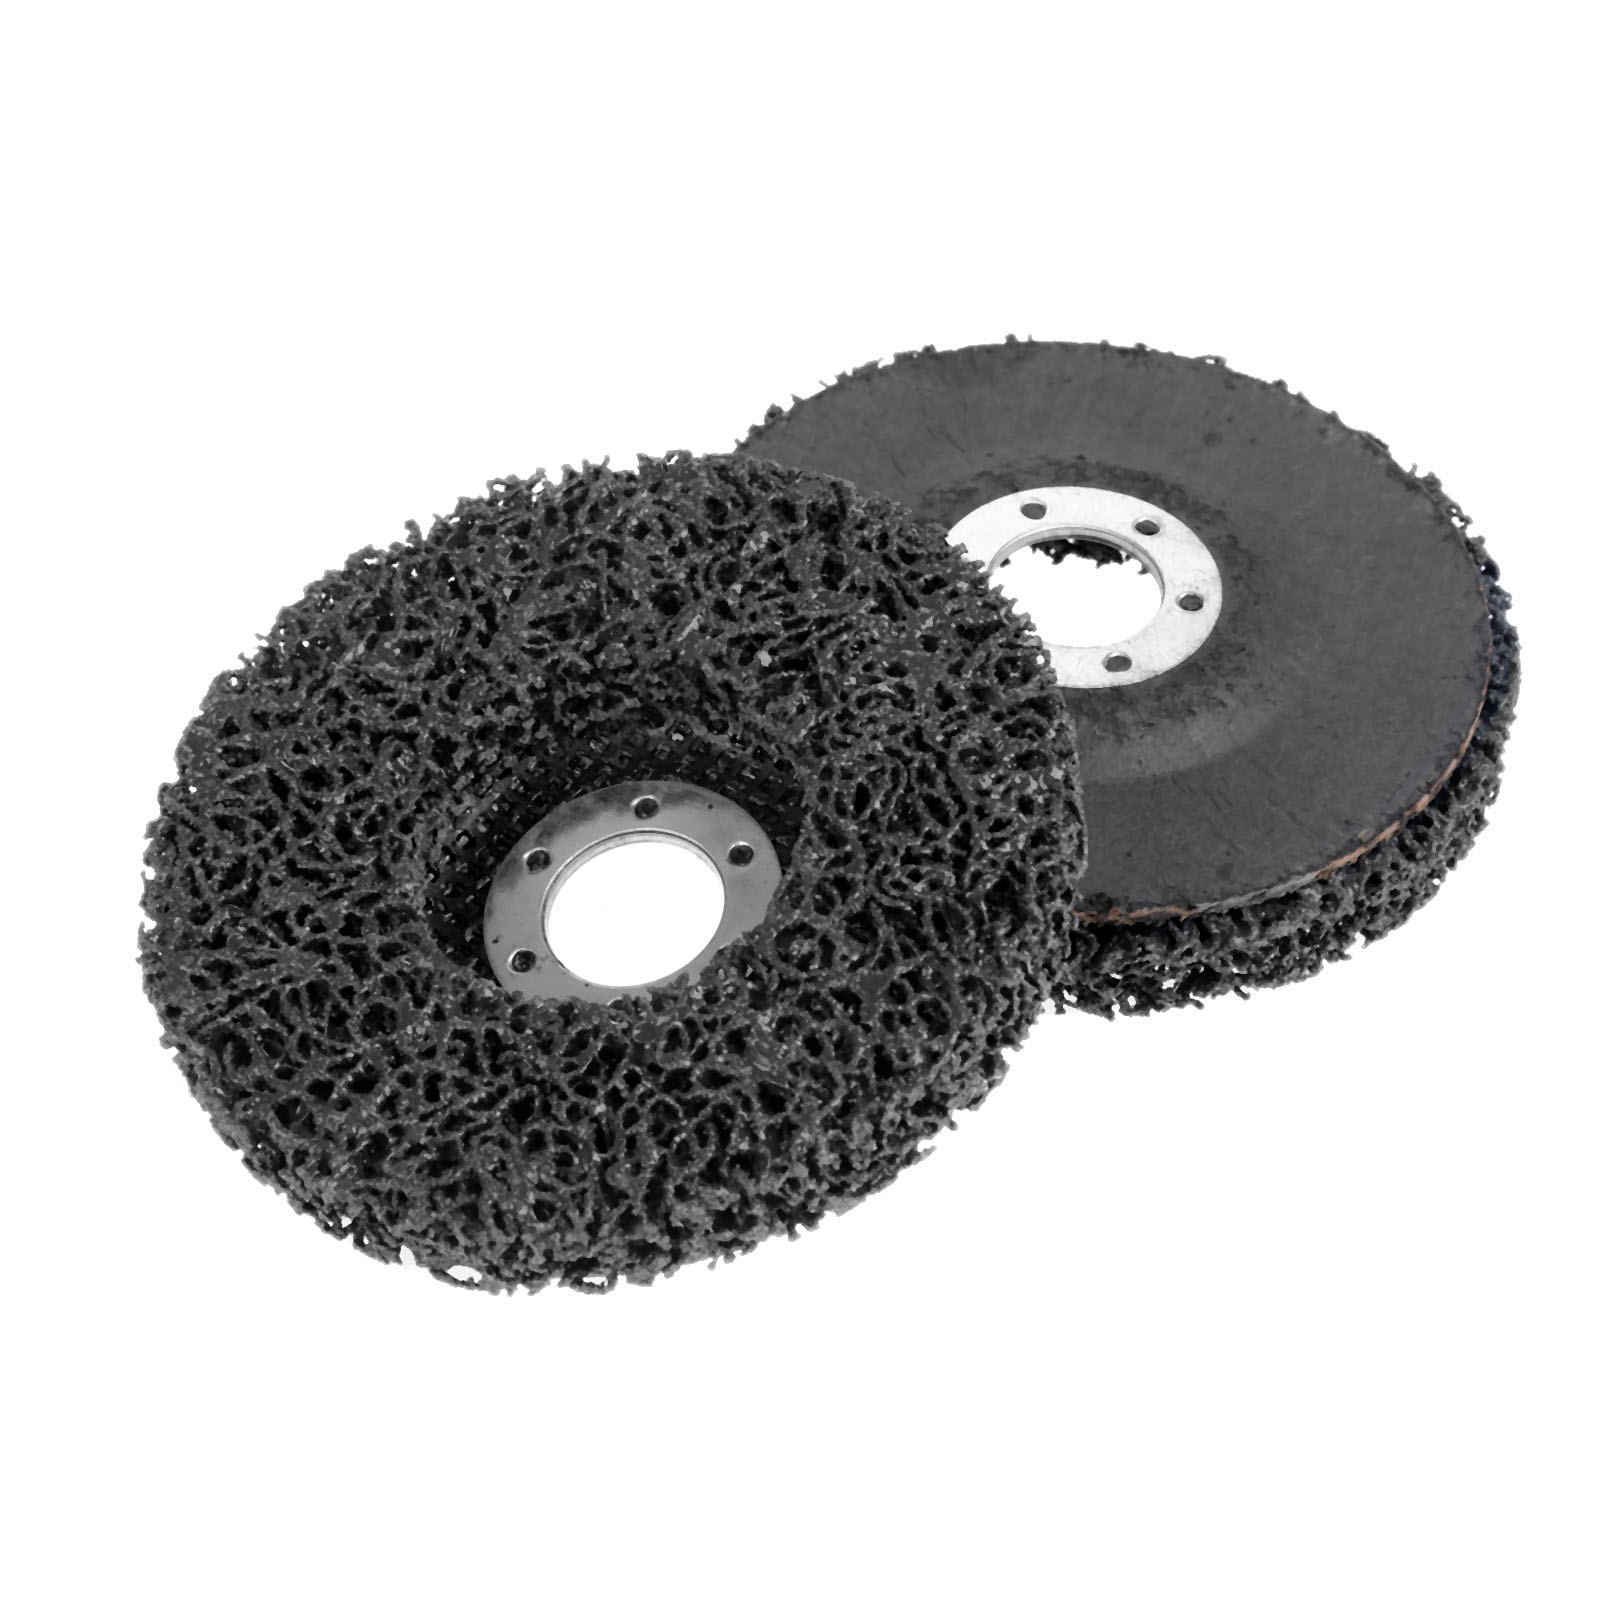 DRELD 1Pc 115*22mm Clean & Strip Coarse Grinding Disc Poly Strip Wheel Disc Paint Rust Removal Clean Grind Wheel Grinder Tools